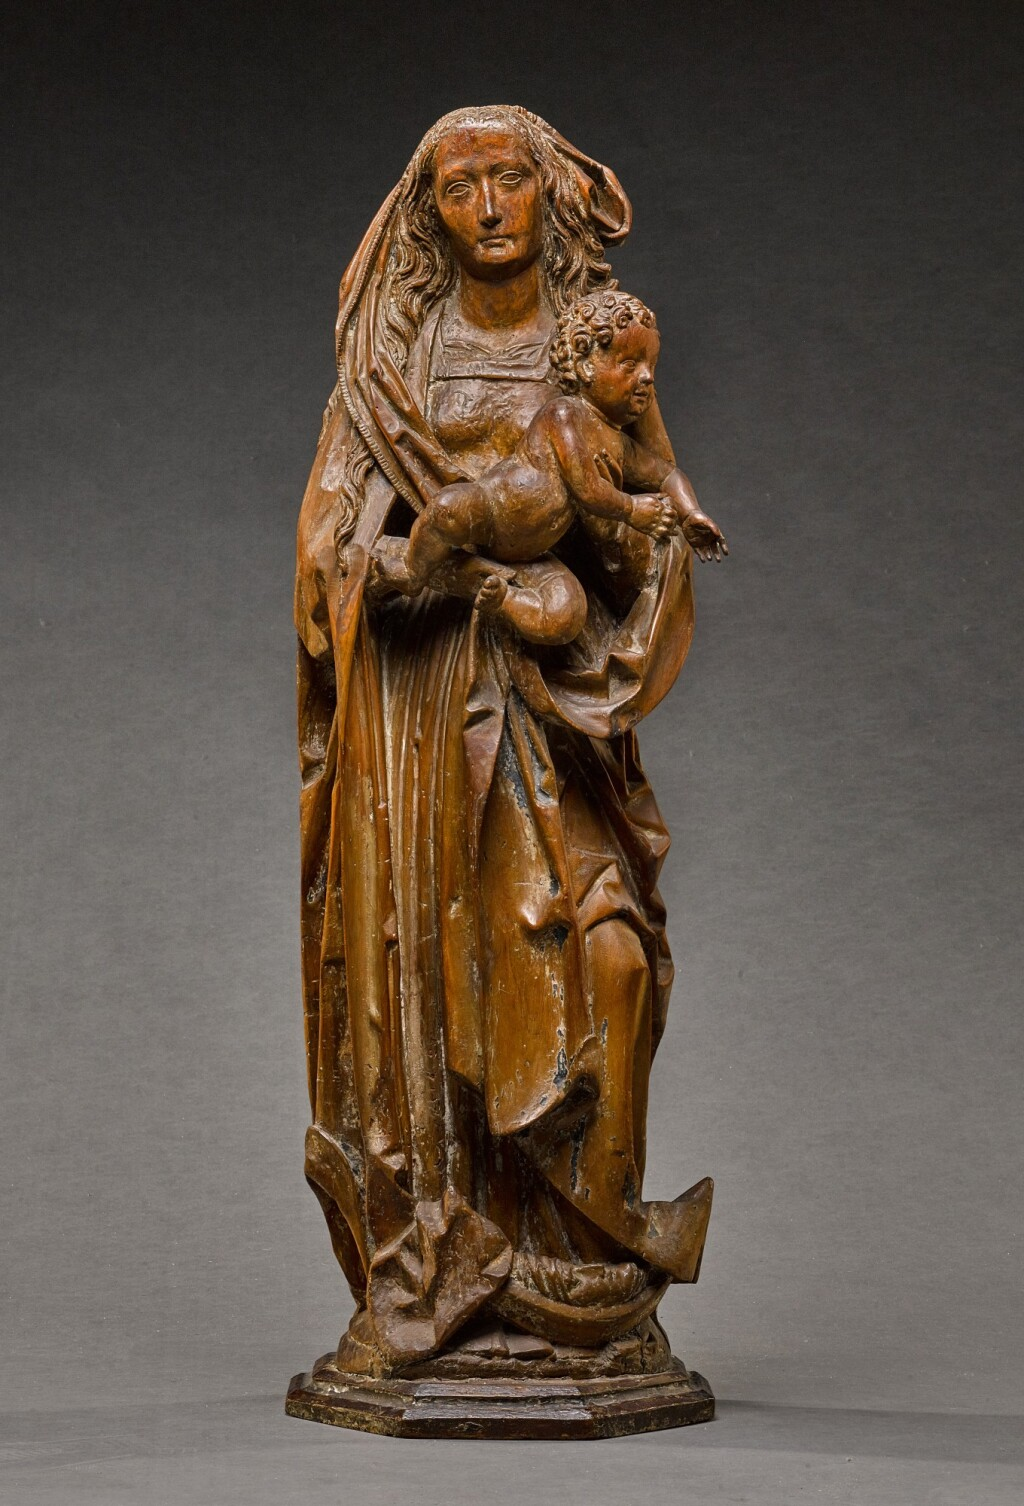 GERMAN, FRANCONIA, EARLY 16TH CENTURY | VIRGIN AND CHILD ON A CRESCENT MOON